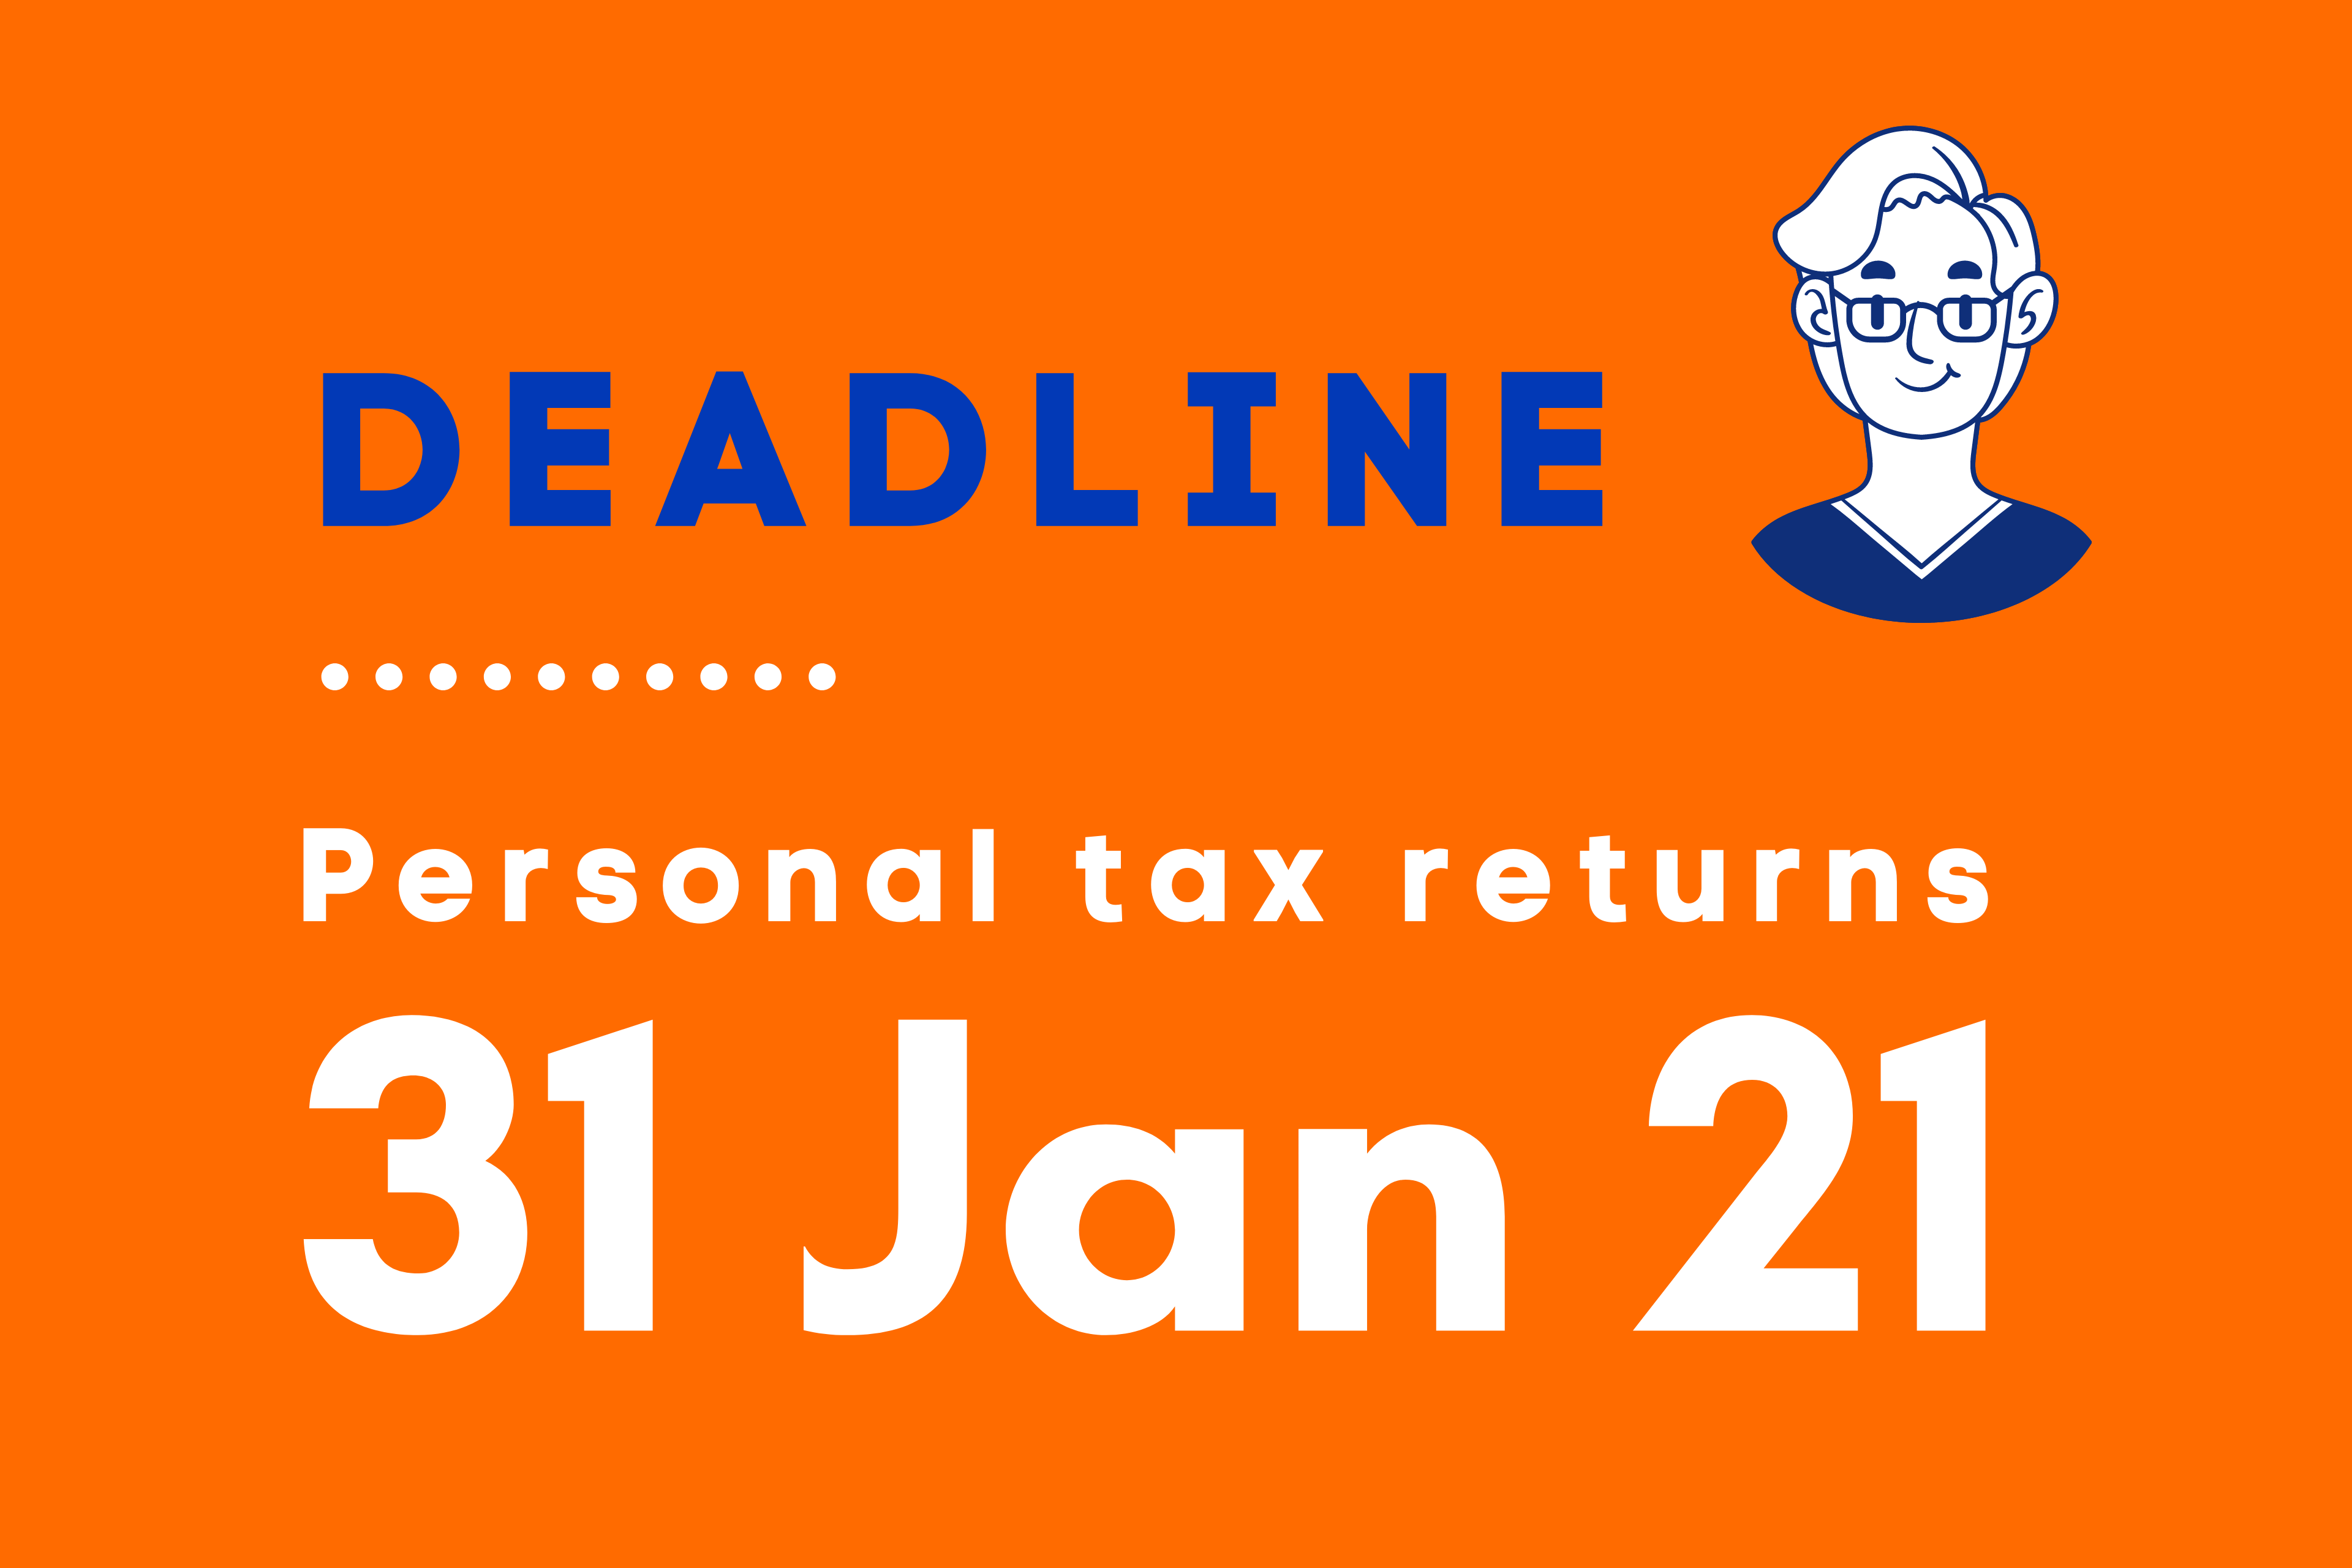 Personal Tax returns deadline